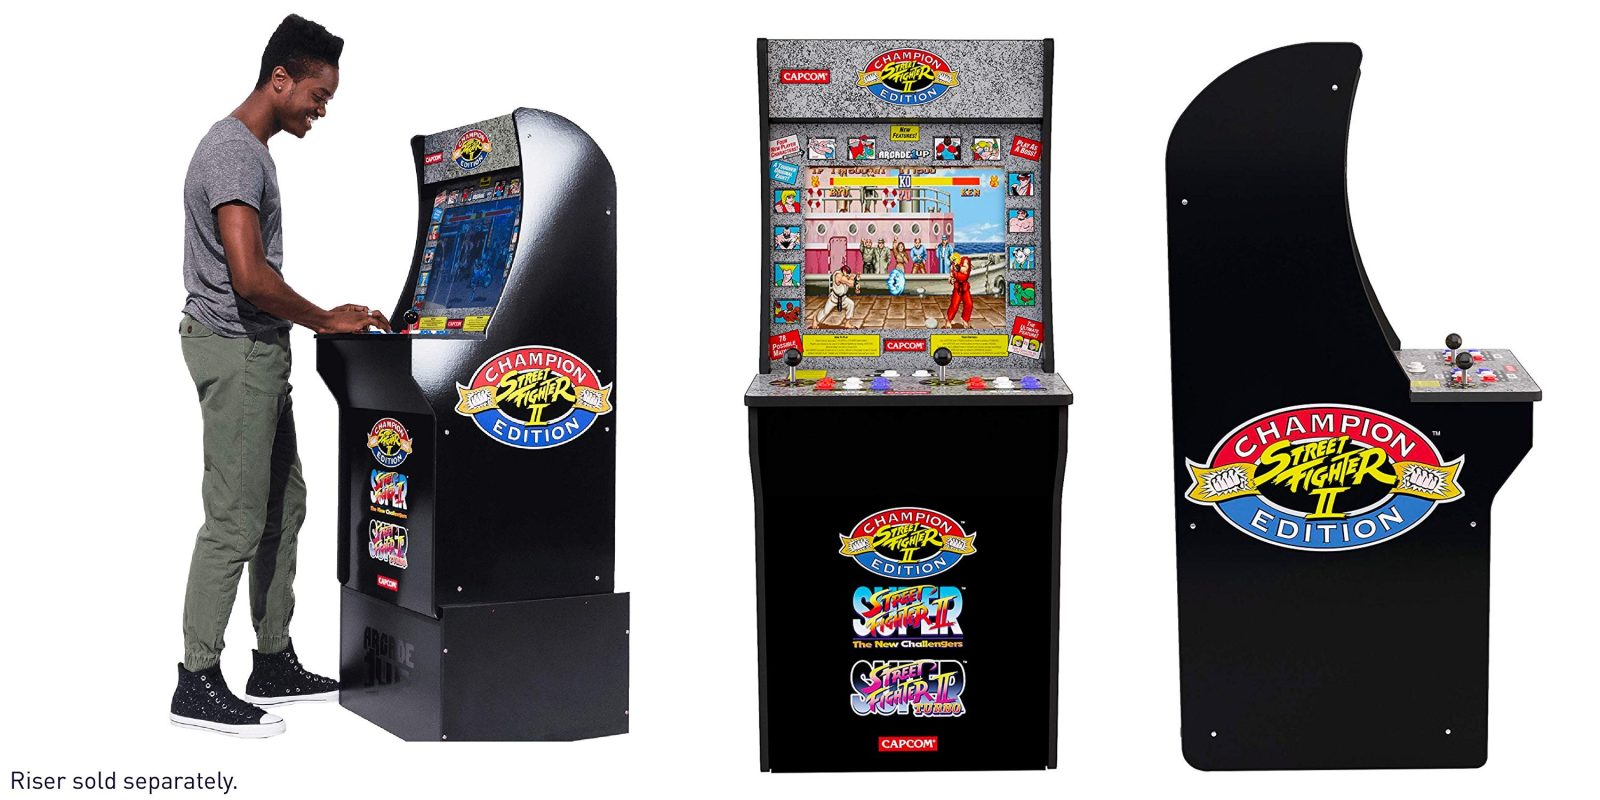 Arcade1Up Street Fighter Classic 3-in-1 Home Arcade: $188 shipped, today only